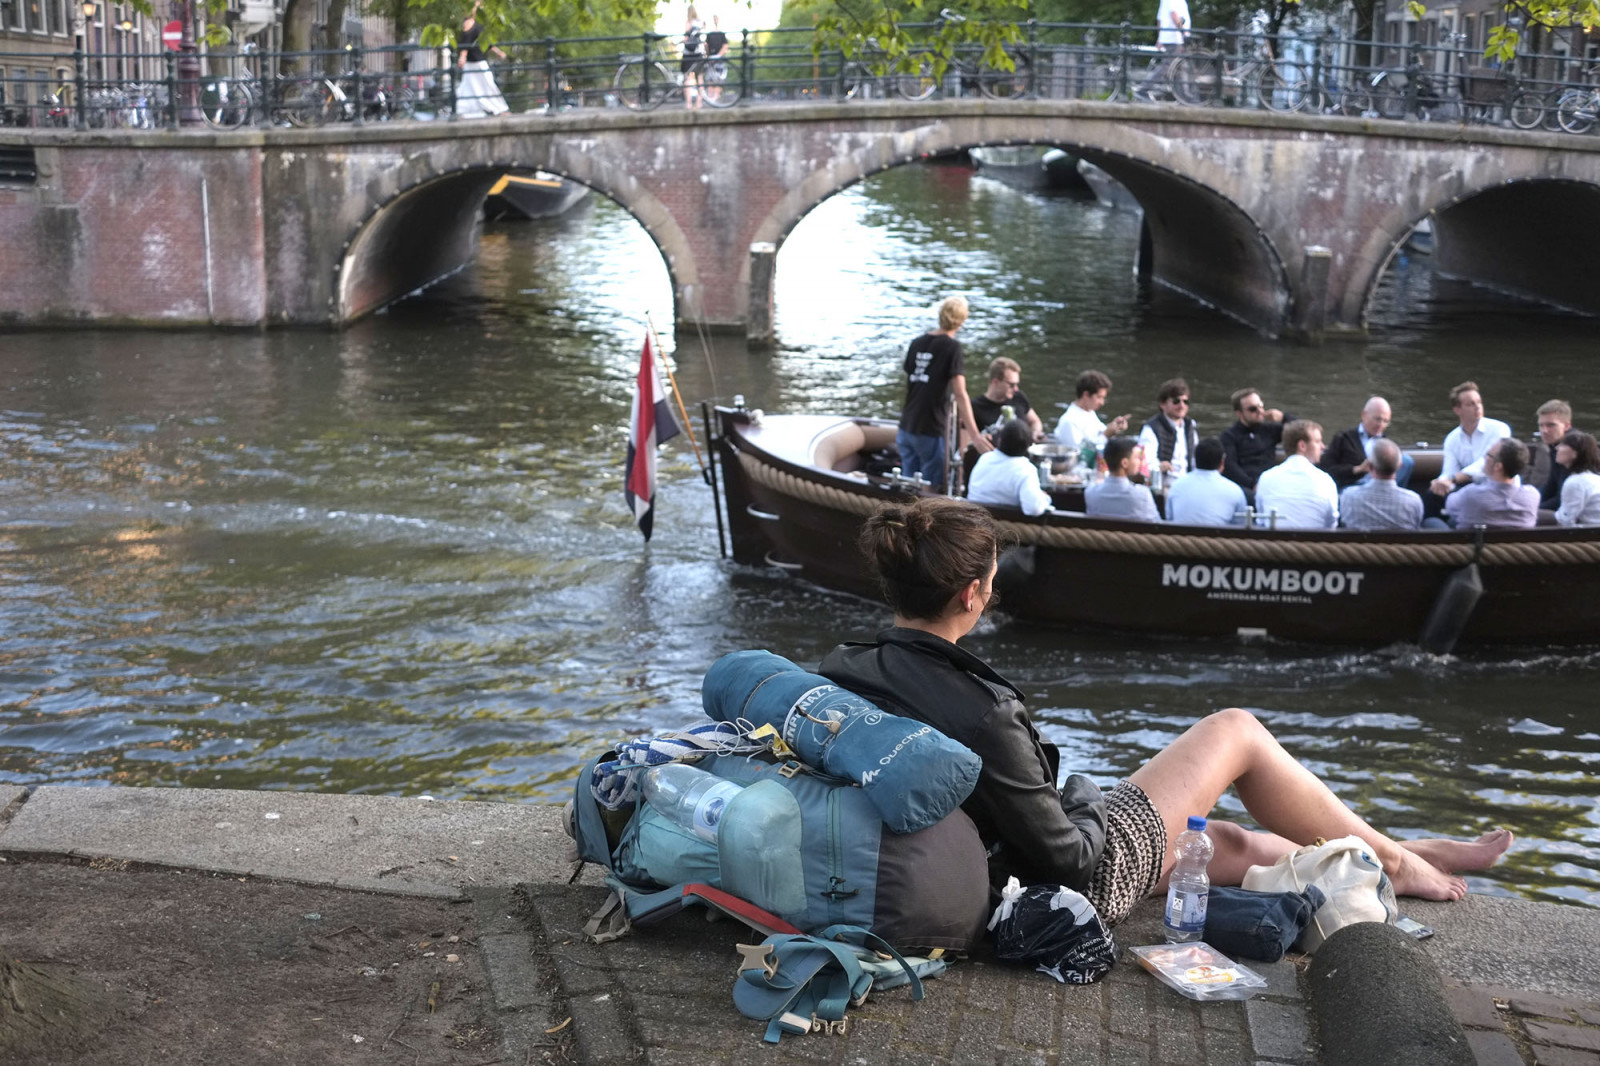 Amsterdam Photo canals and boats